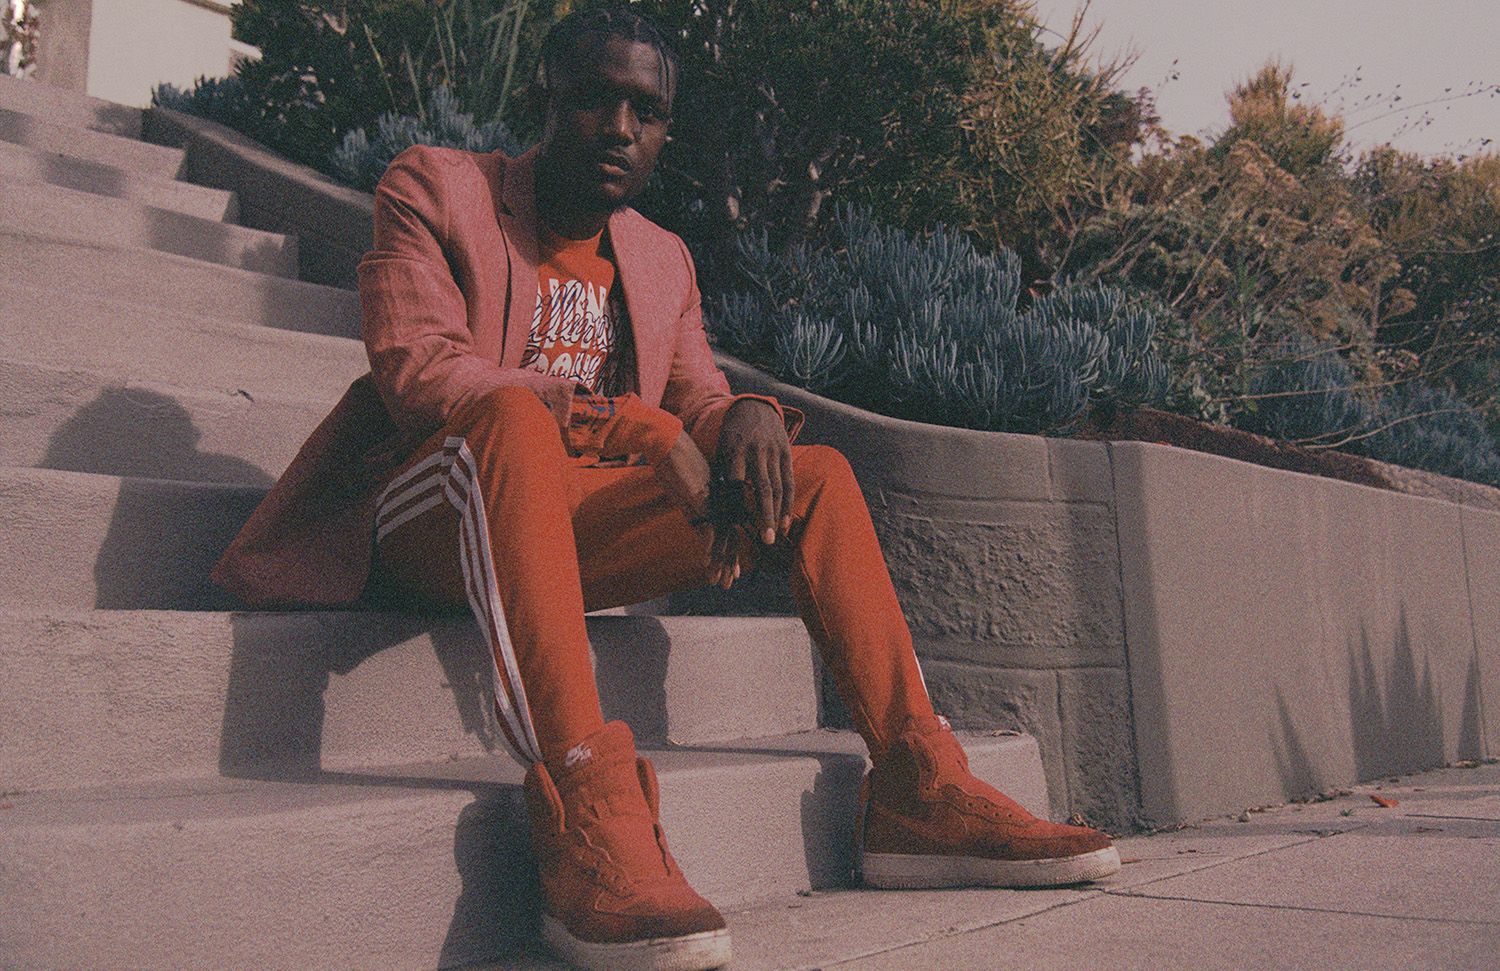 Men's Fashion Editorial – In a City of Angels